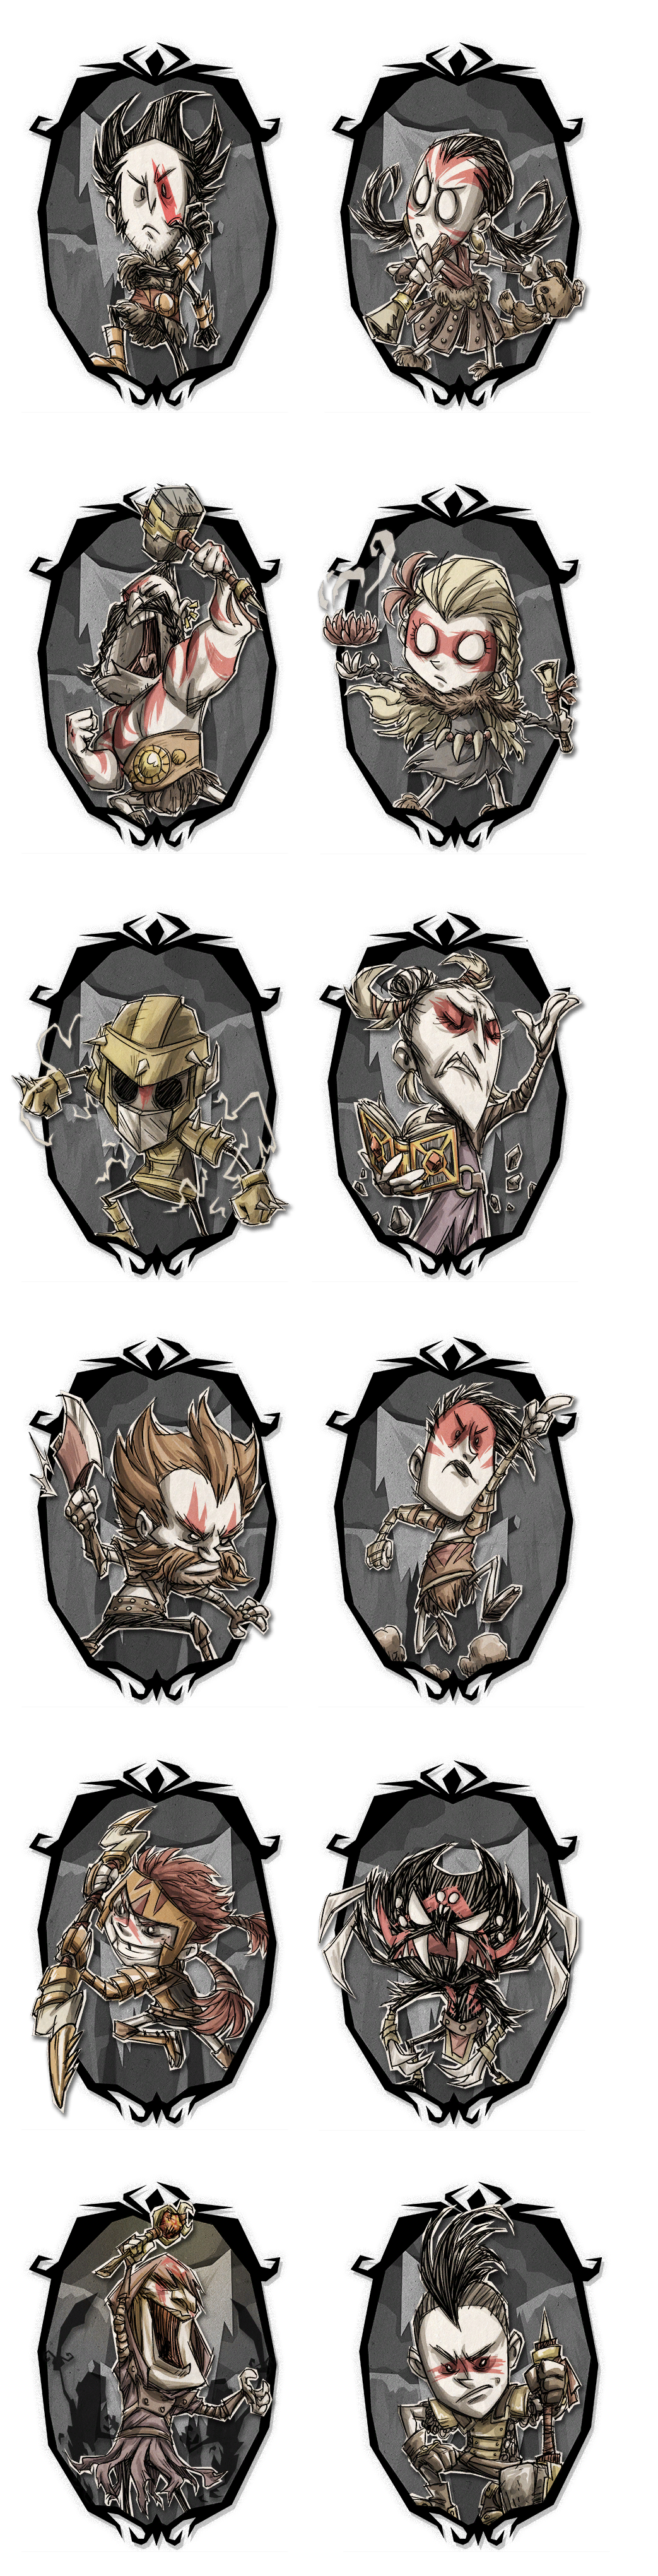 Don't Starve - Character Select (Gladiator)